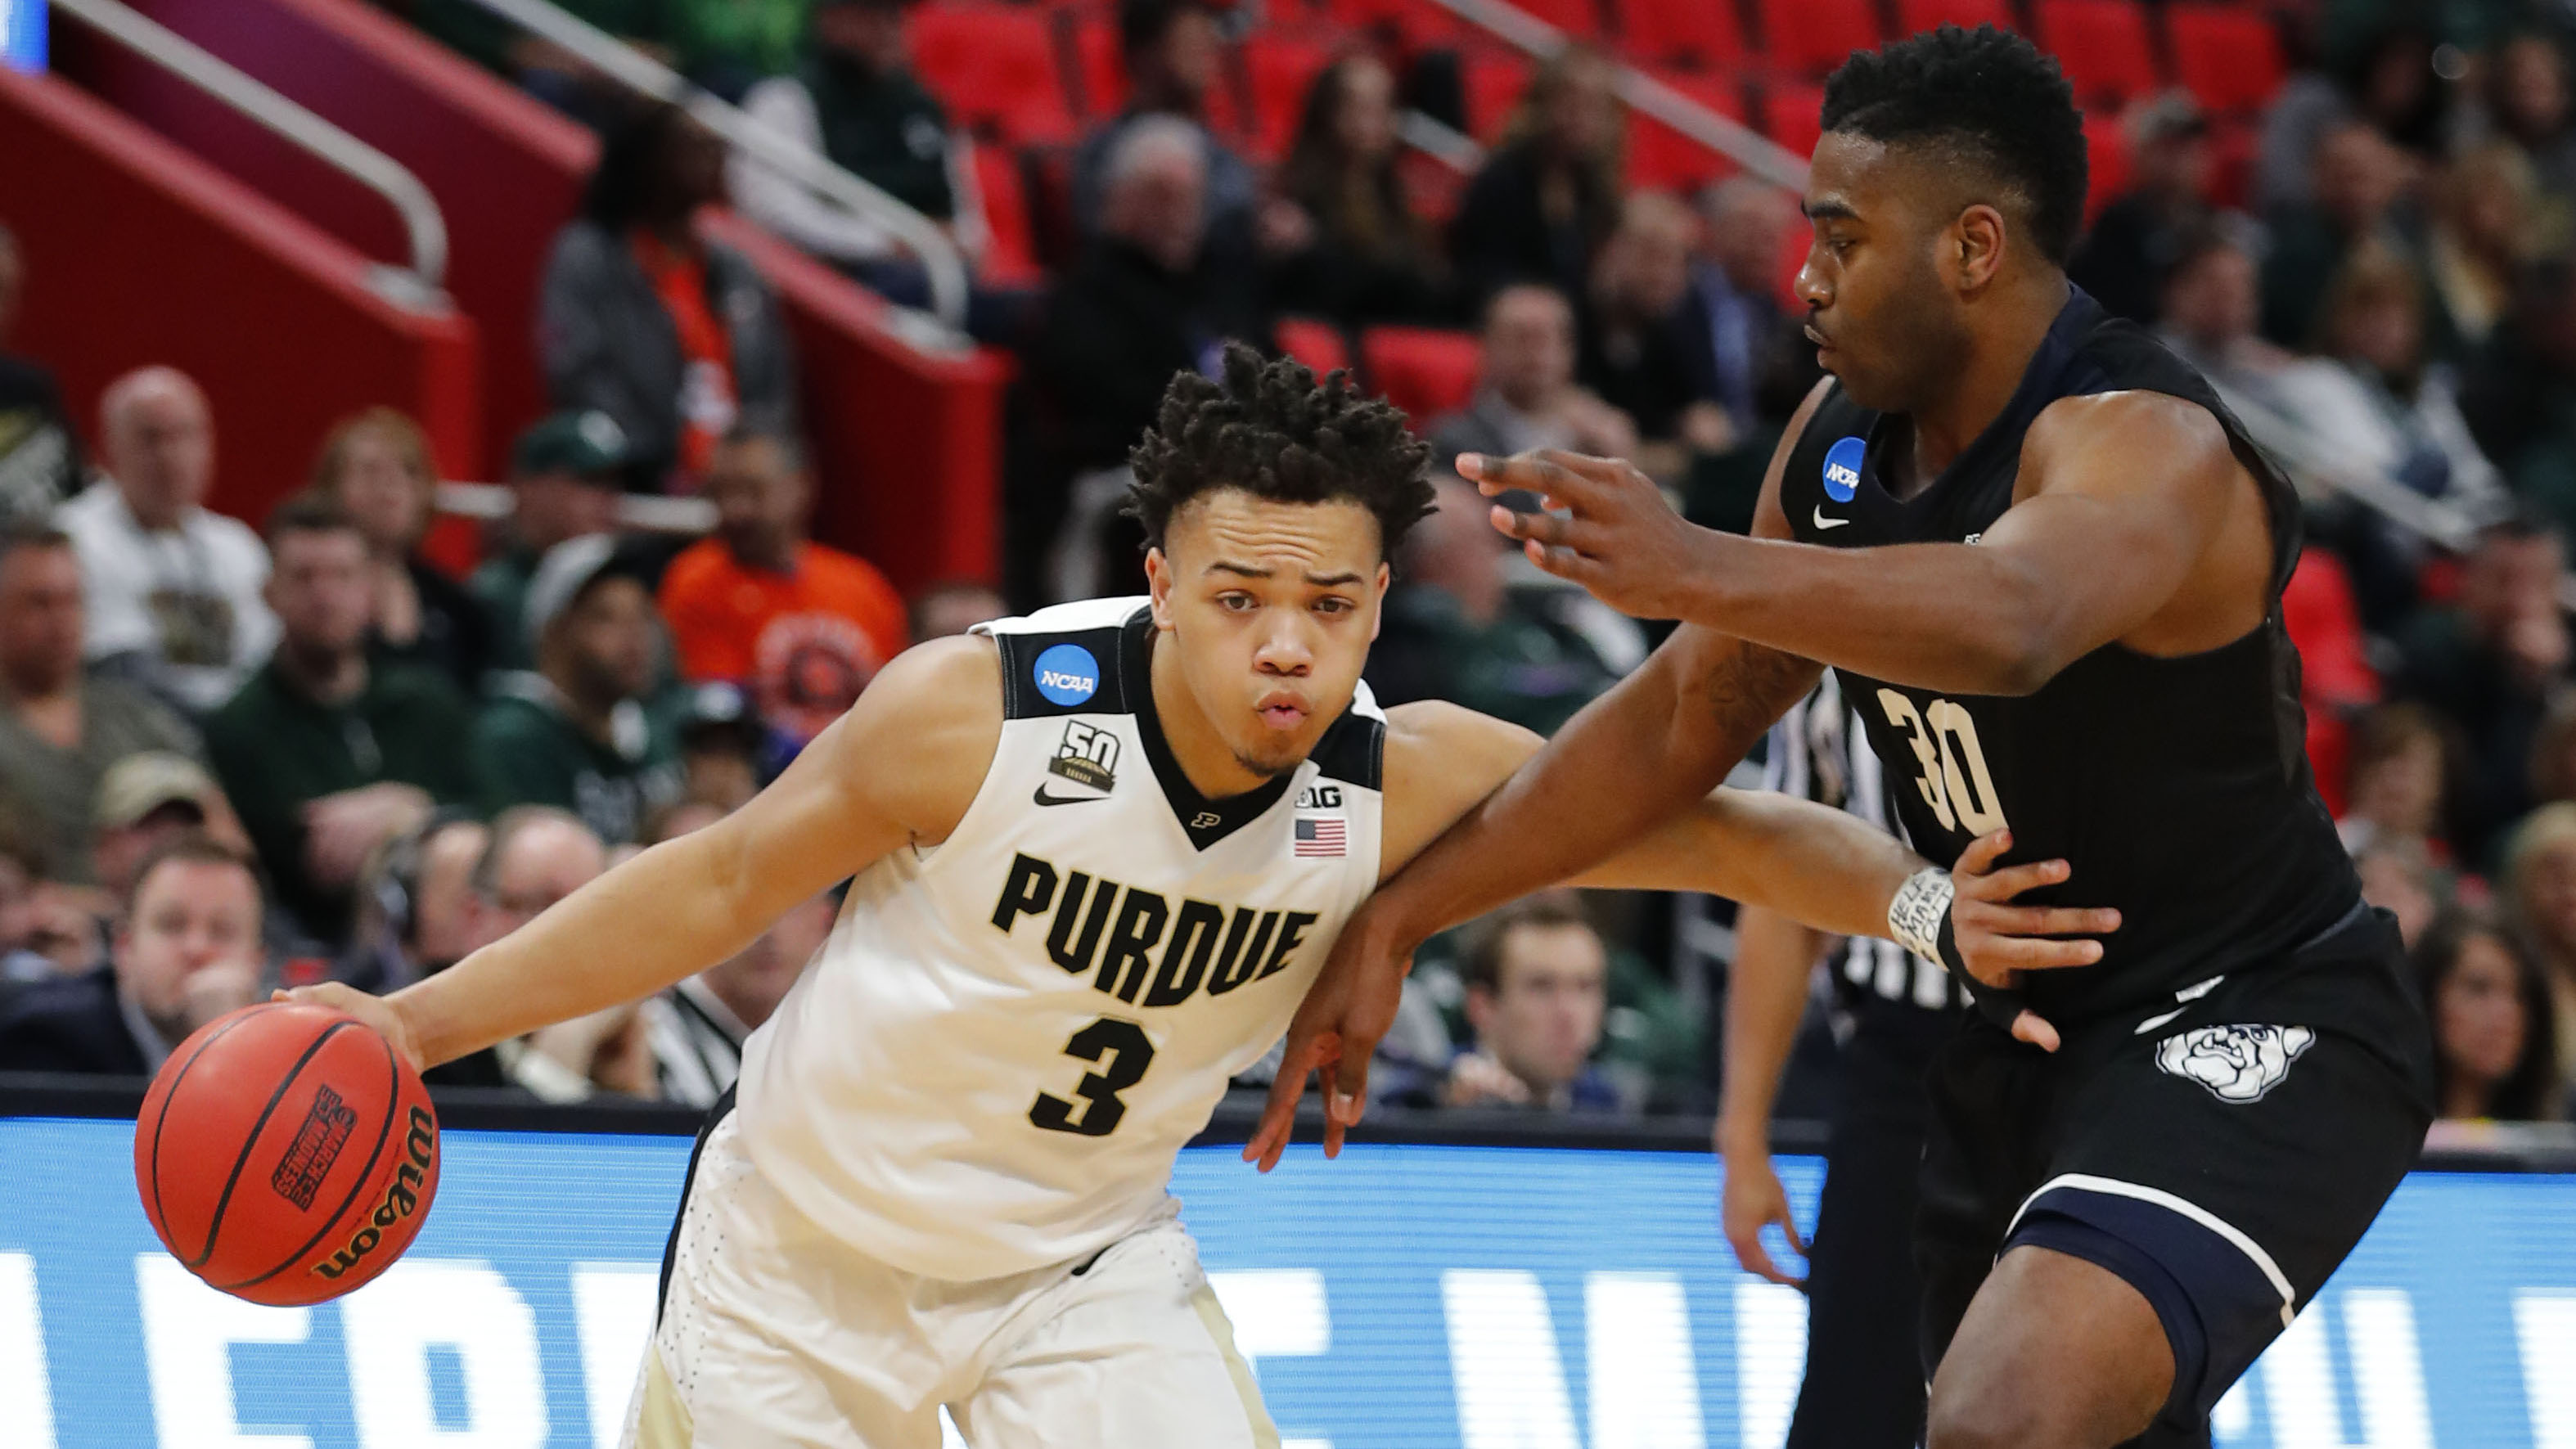 Purdue's Carsen Edwards is among the contenders for Big Ten Player of the Year